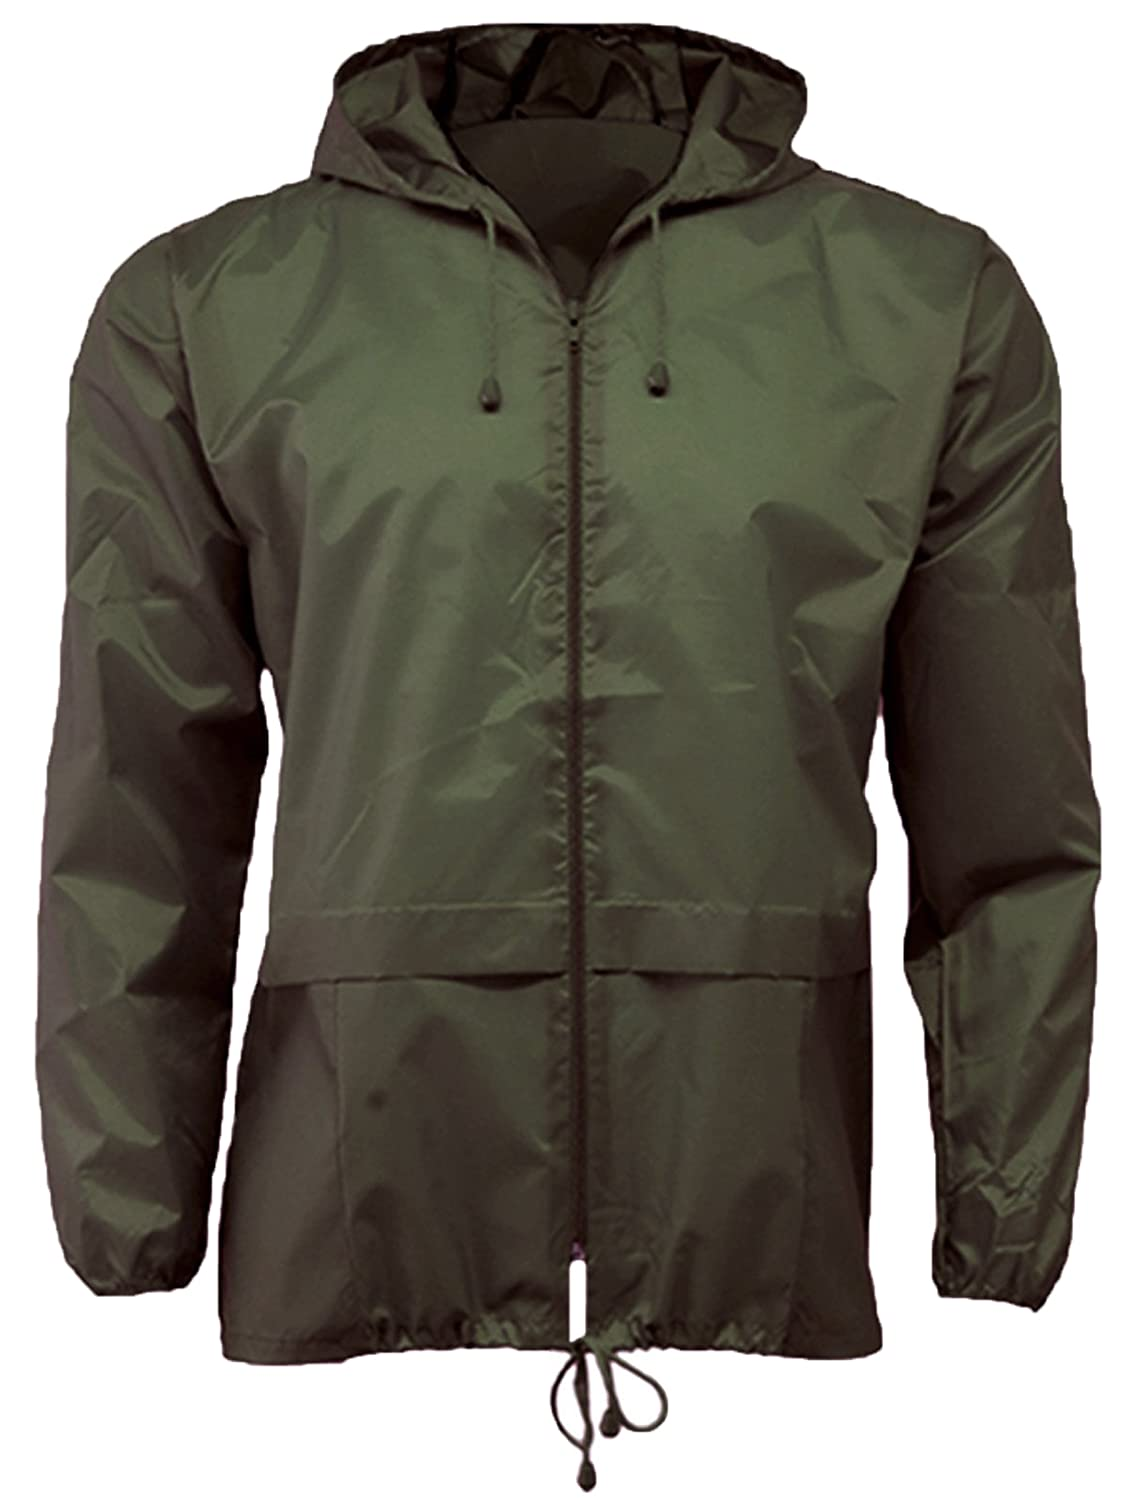 G5 Apparel Lightweight Unisex Cagoule Kagool (XL, Olive)